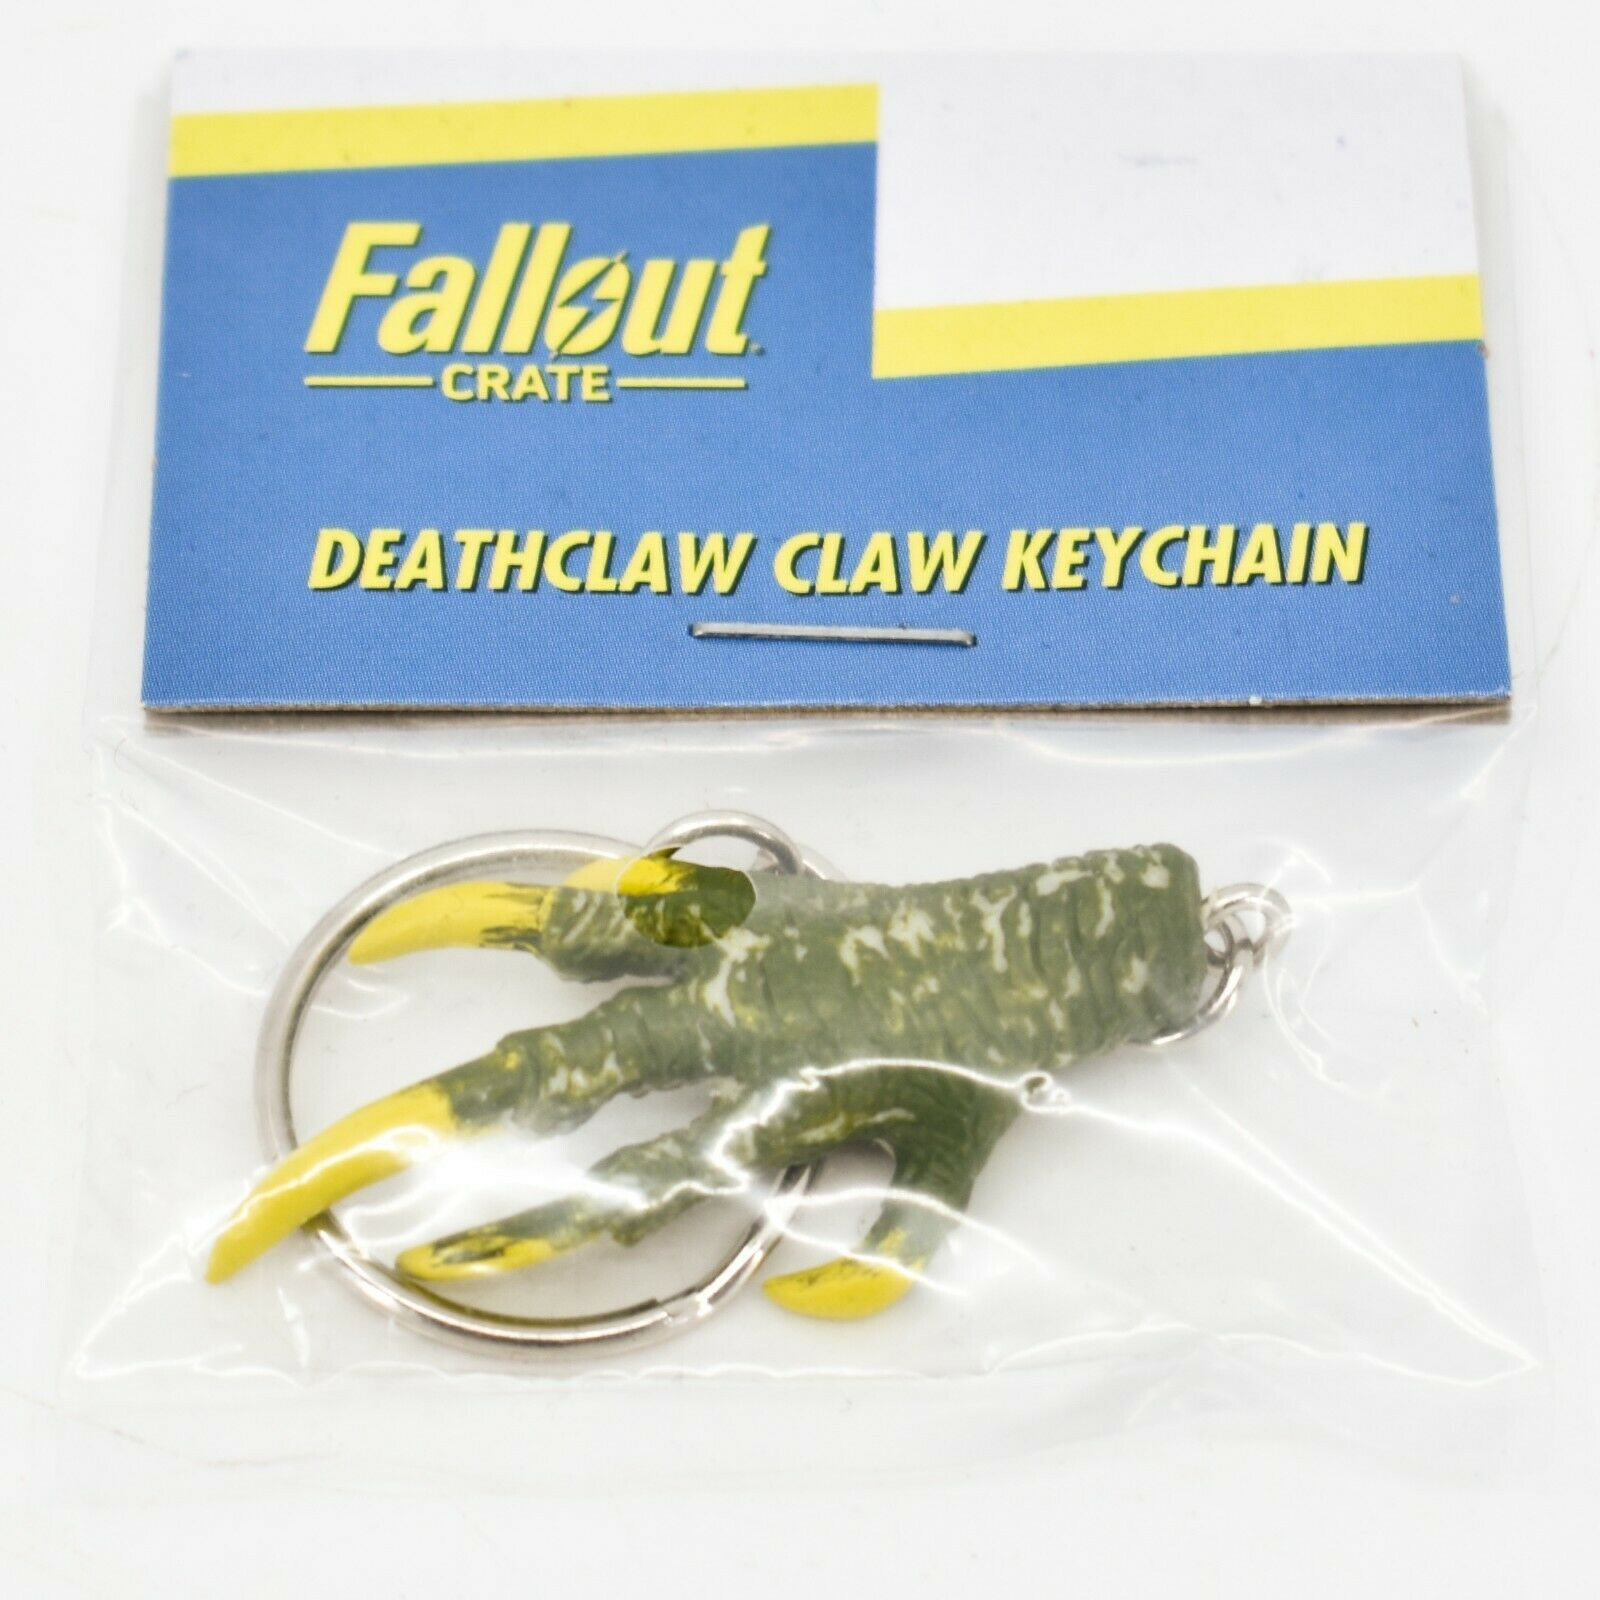 Fallout Crate #18 LootCrate Deathclaw Claw Keychain